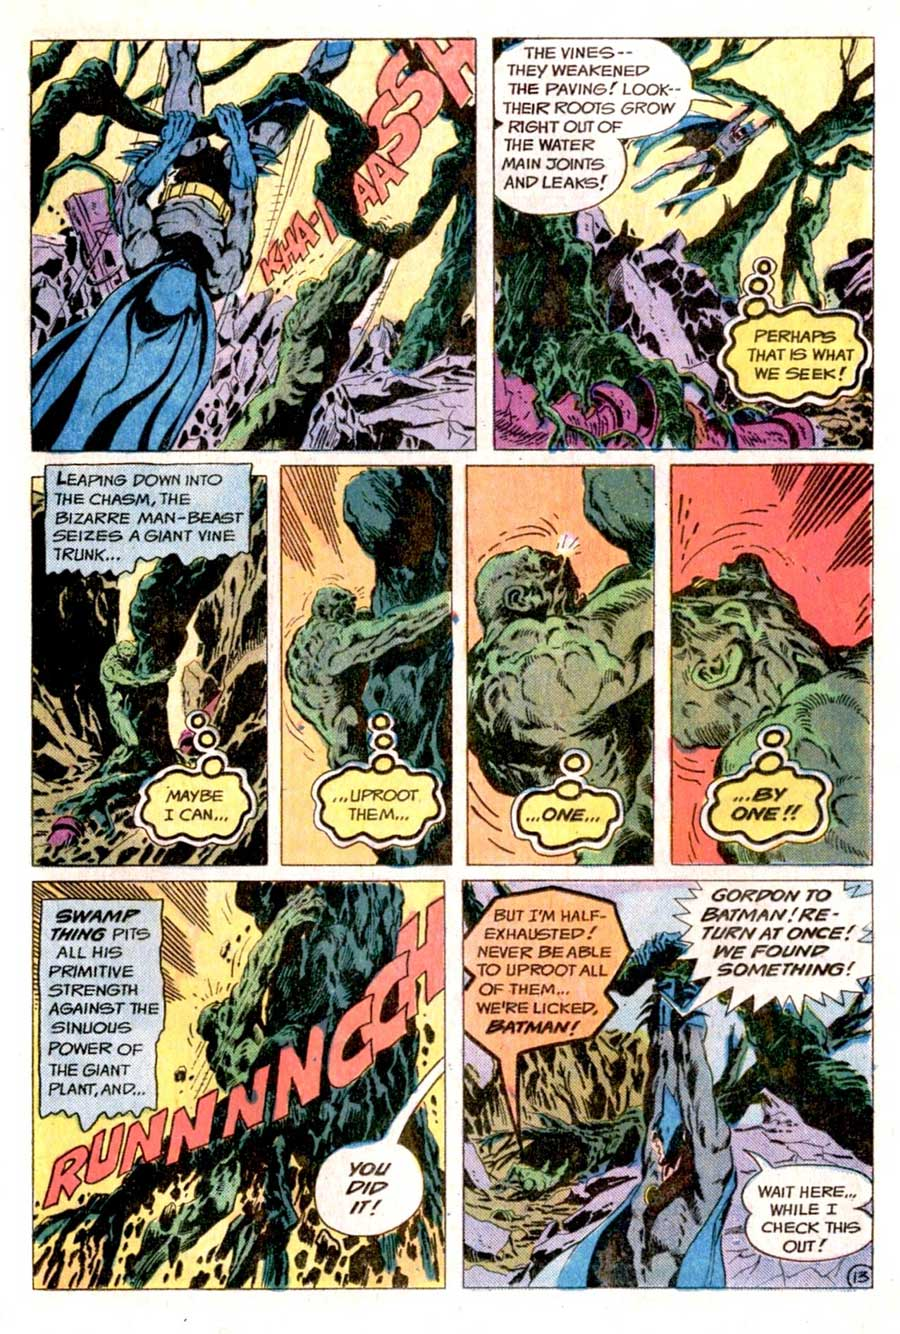 The Brave and the Bold #122 by Bob Haney and Jim Aparo with Batman and Swamp Thing